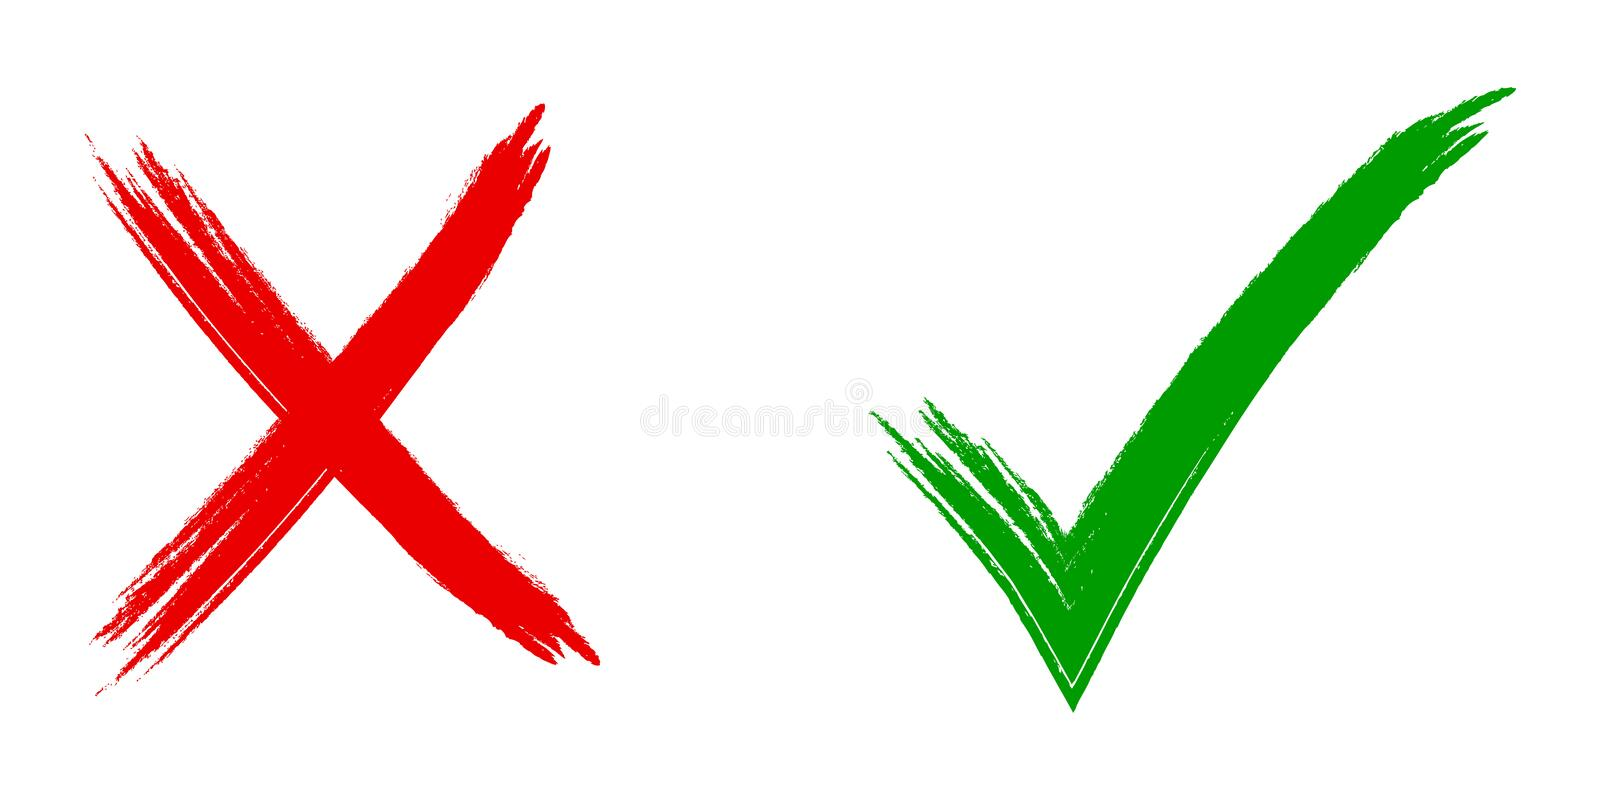 Tick and cross signs. Green checkmark OK and red X icons, Simple marks graphic design. Symbols YES and NO button for vote, Check. Box list icons. Check marks stock illustration